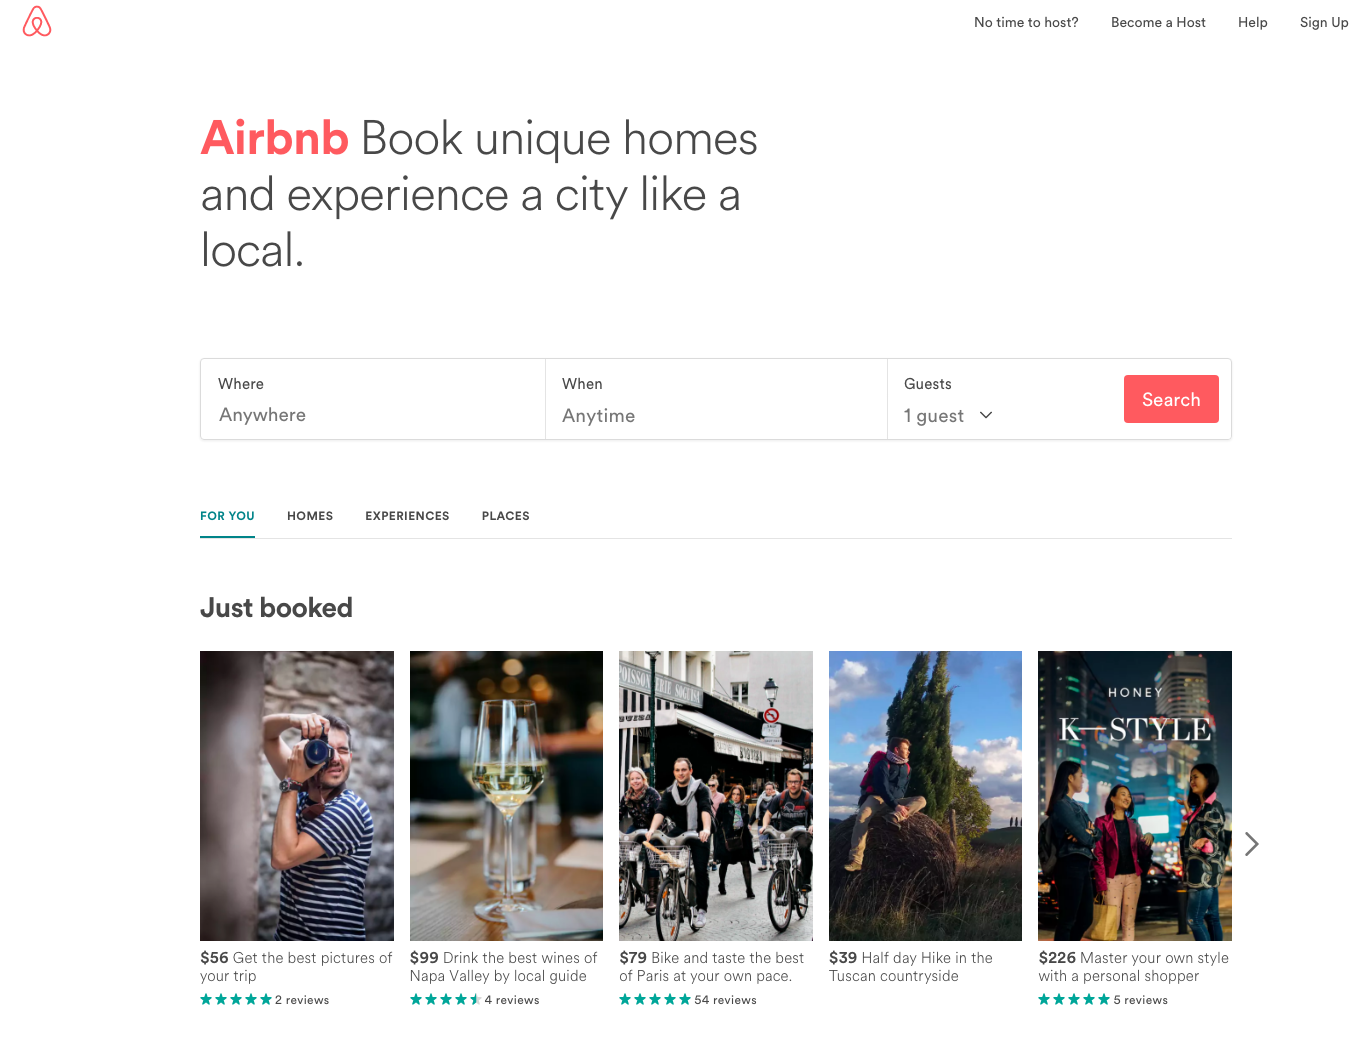 2. Airbnb · VIEW ENTIRE HOMEPAGE